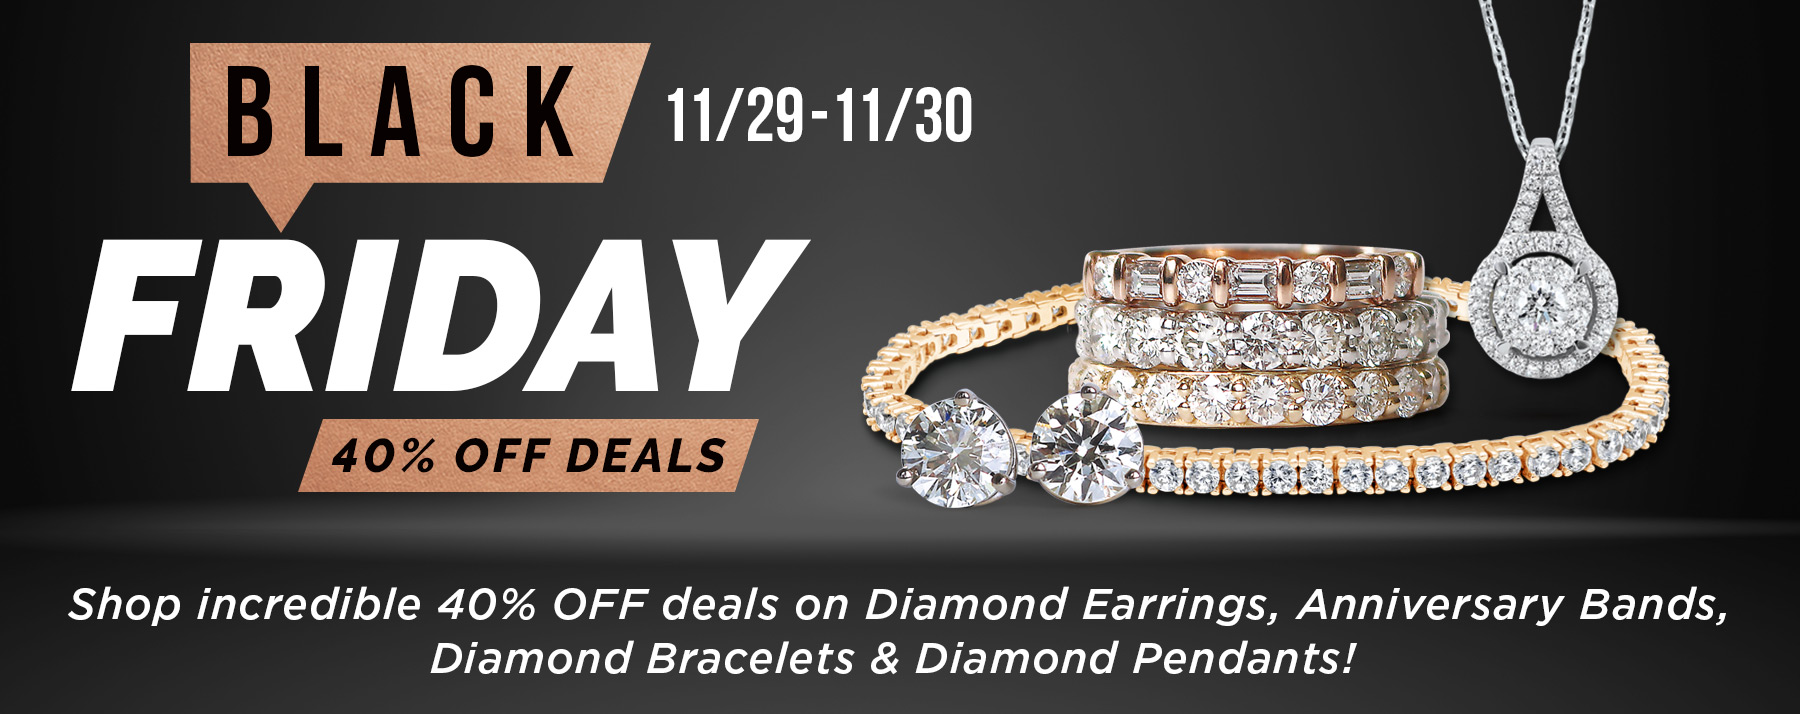 Bentley Diamond Black Friday Sale - 40% OFF